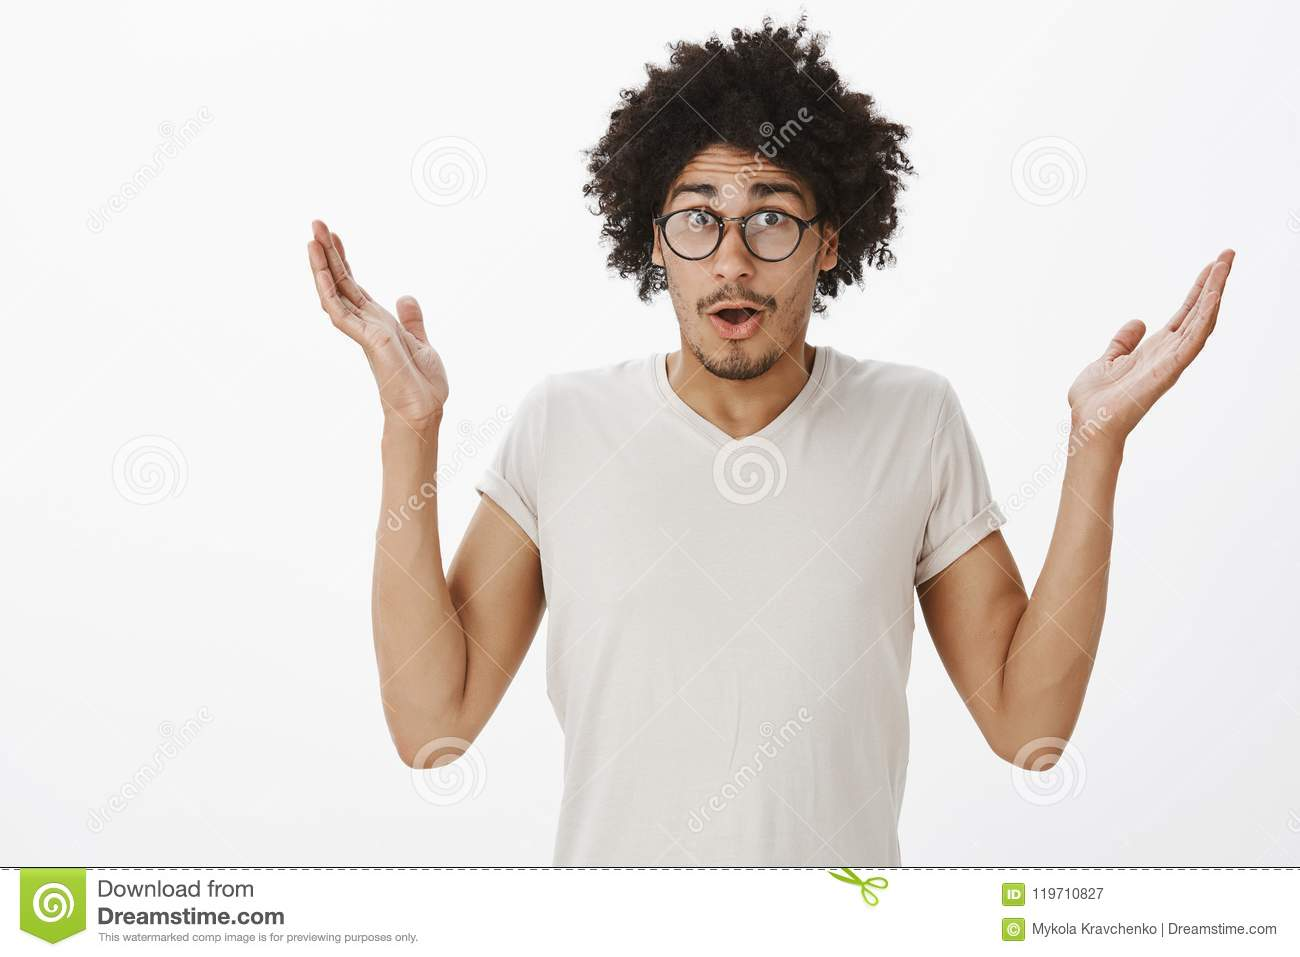 Guy saying sorry forgetting about buying milk, shrugging and spreading palms high, standing with confused and questioned